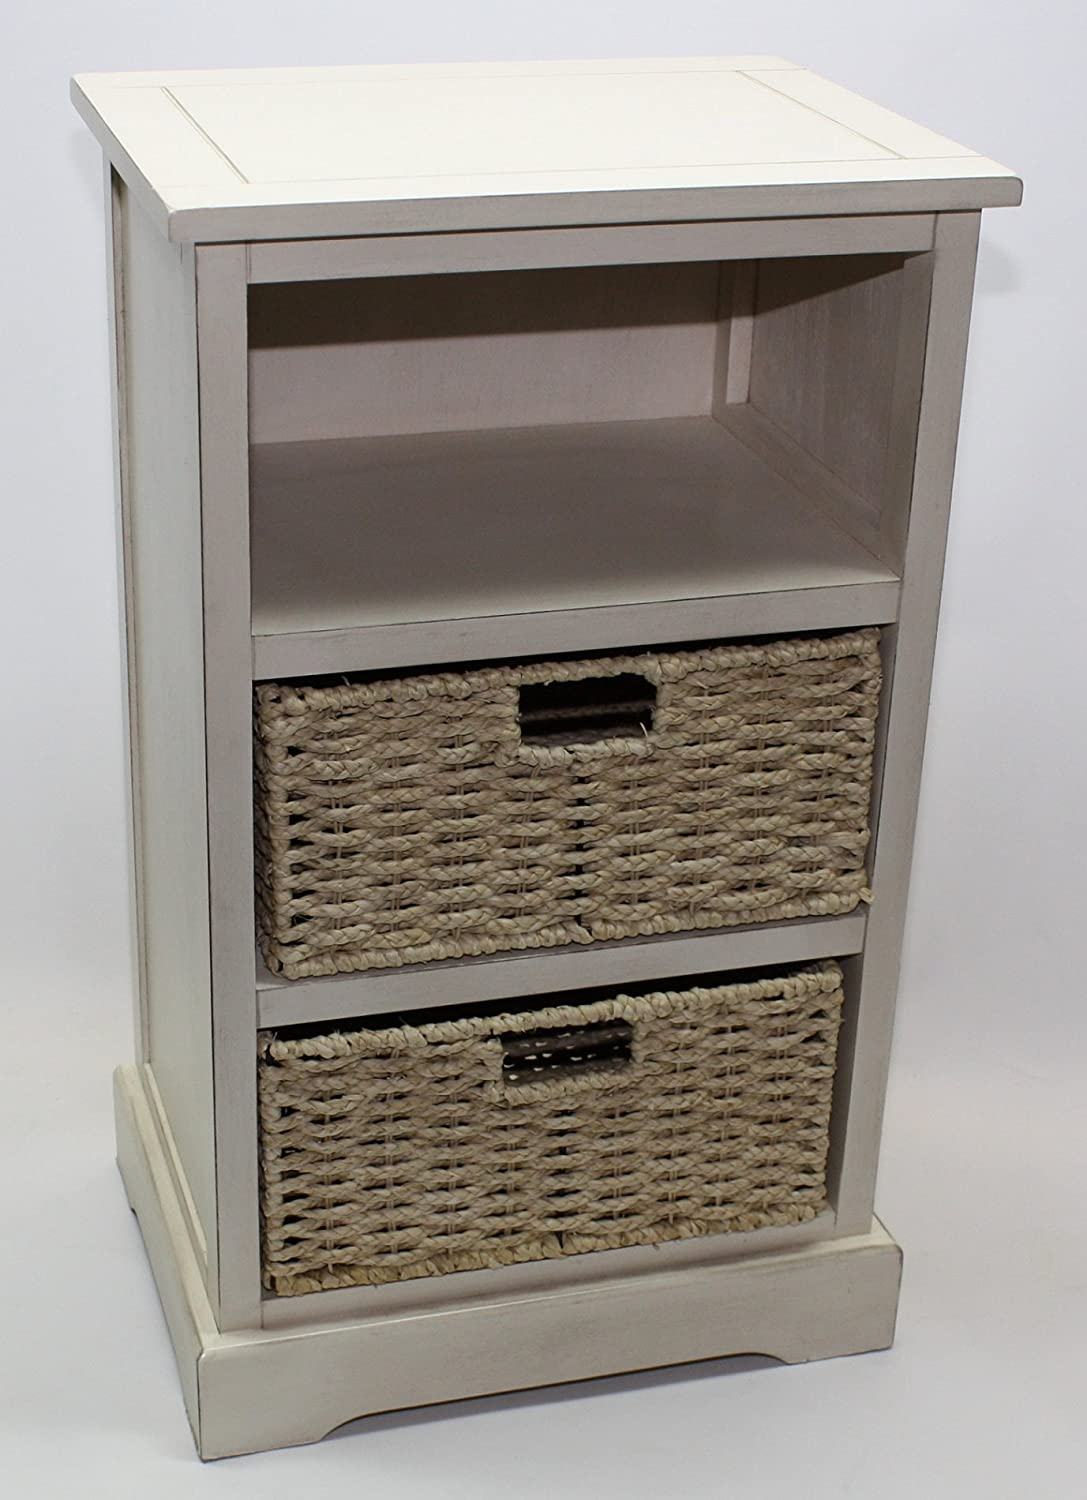 Home Source White Tall Wooden Shabby Chic Wicker Cabinet Storage Side Table 2 Drawer Bedside PB51 2 Drawer Unit